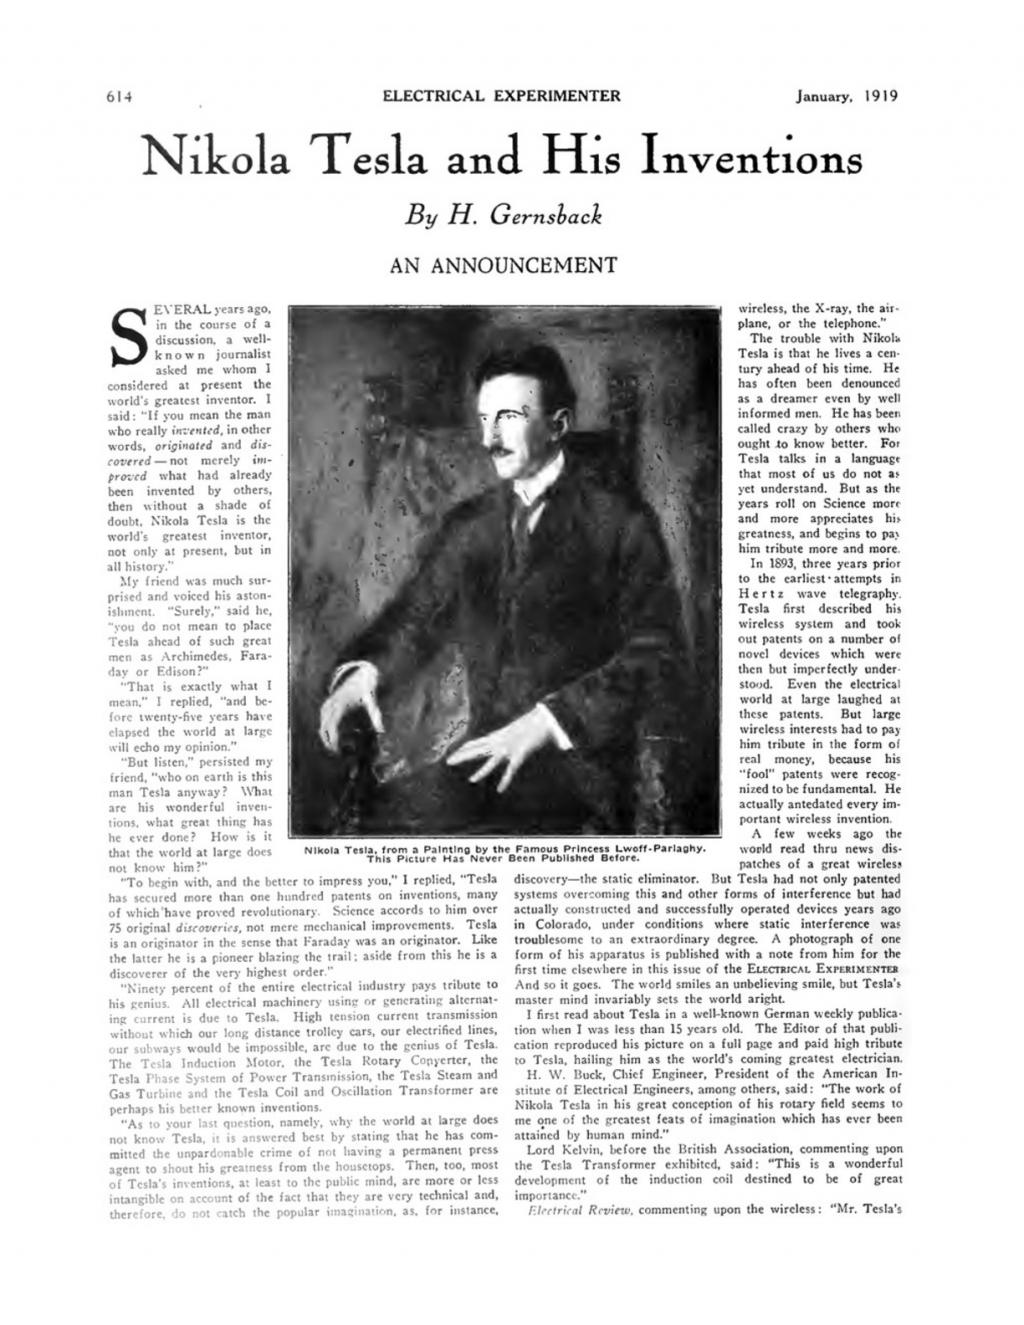 Preview of Nikola Tesla and His Inventions - An Announcement article